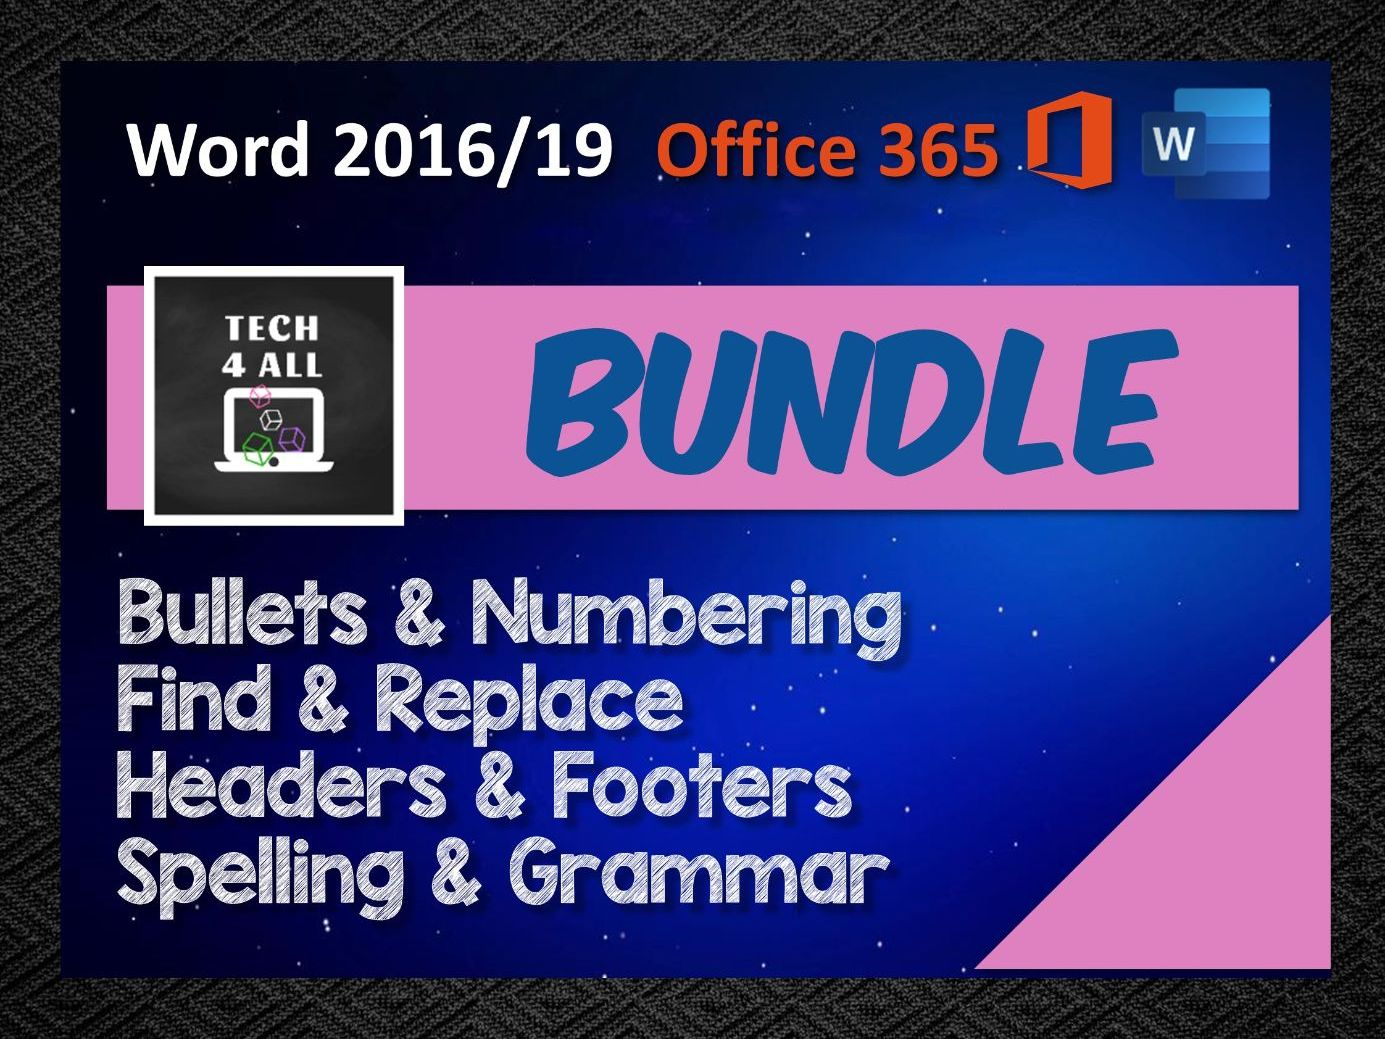 Bundle - Bullets & Numbering, Find & Replace, Headers & Footers, Spelling & Grammar